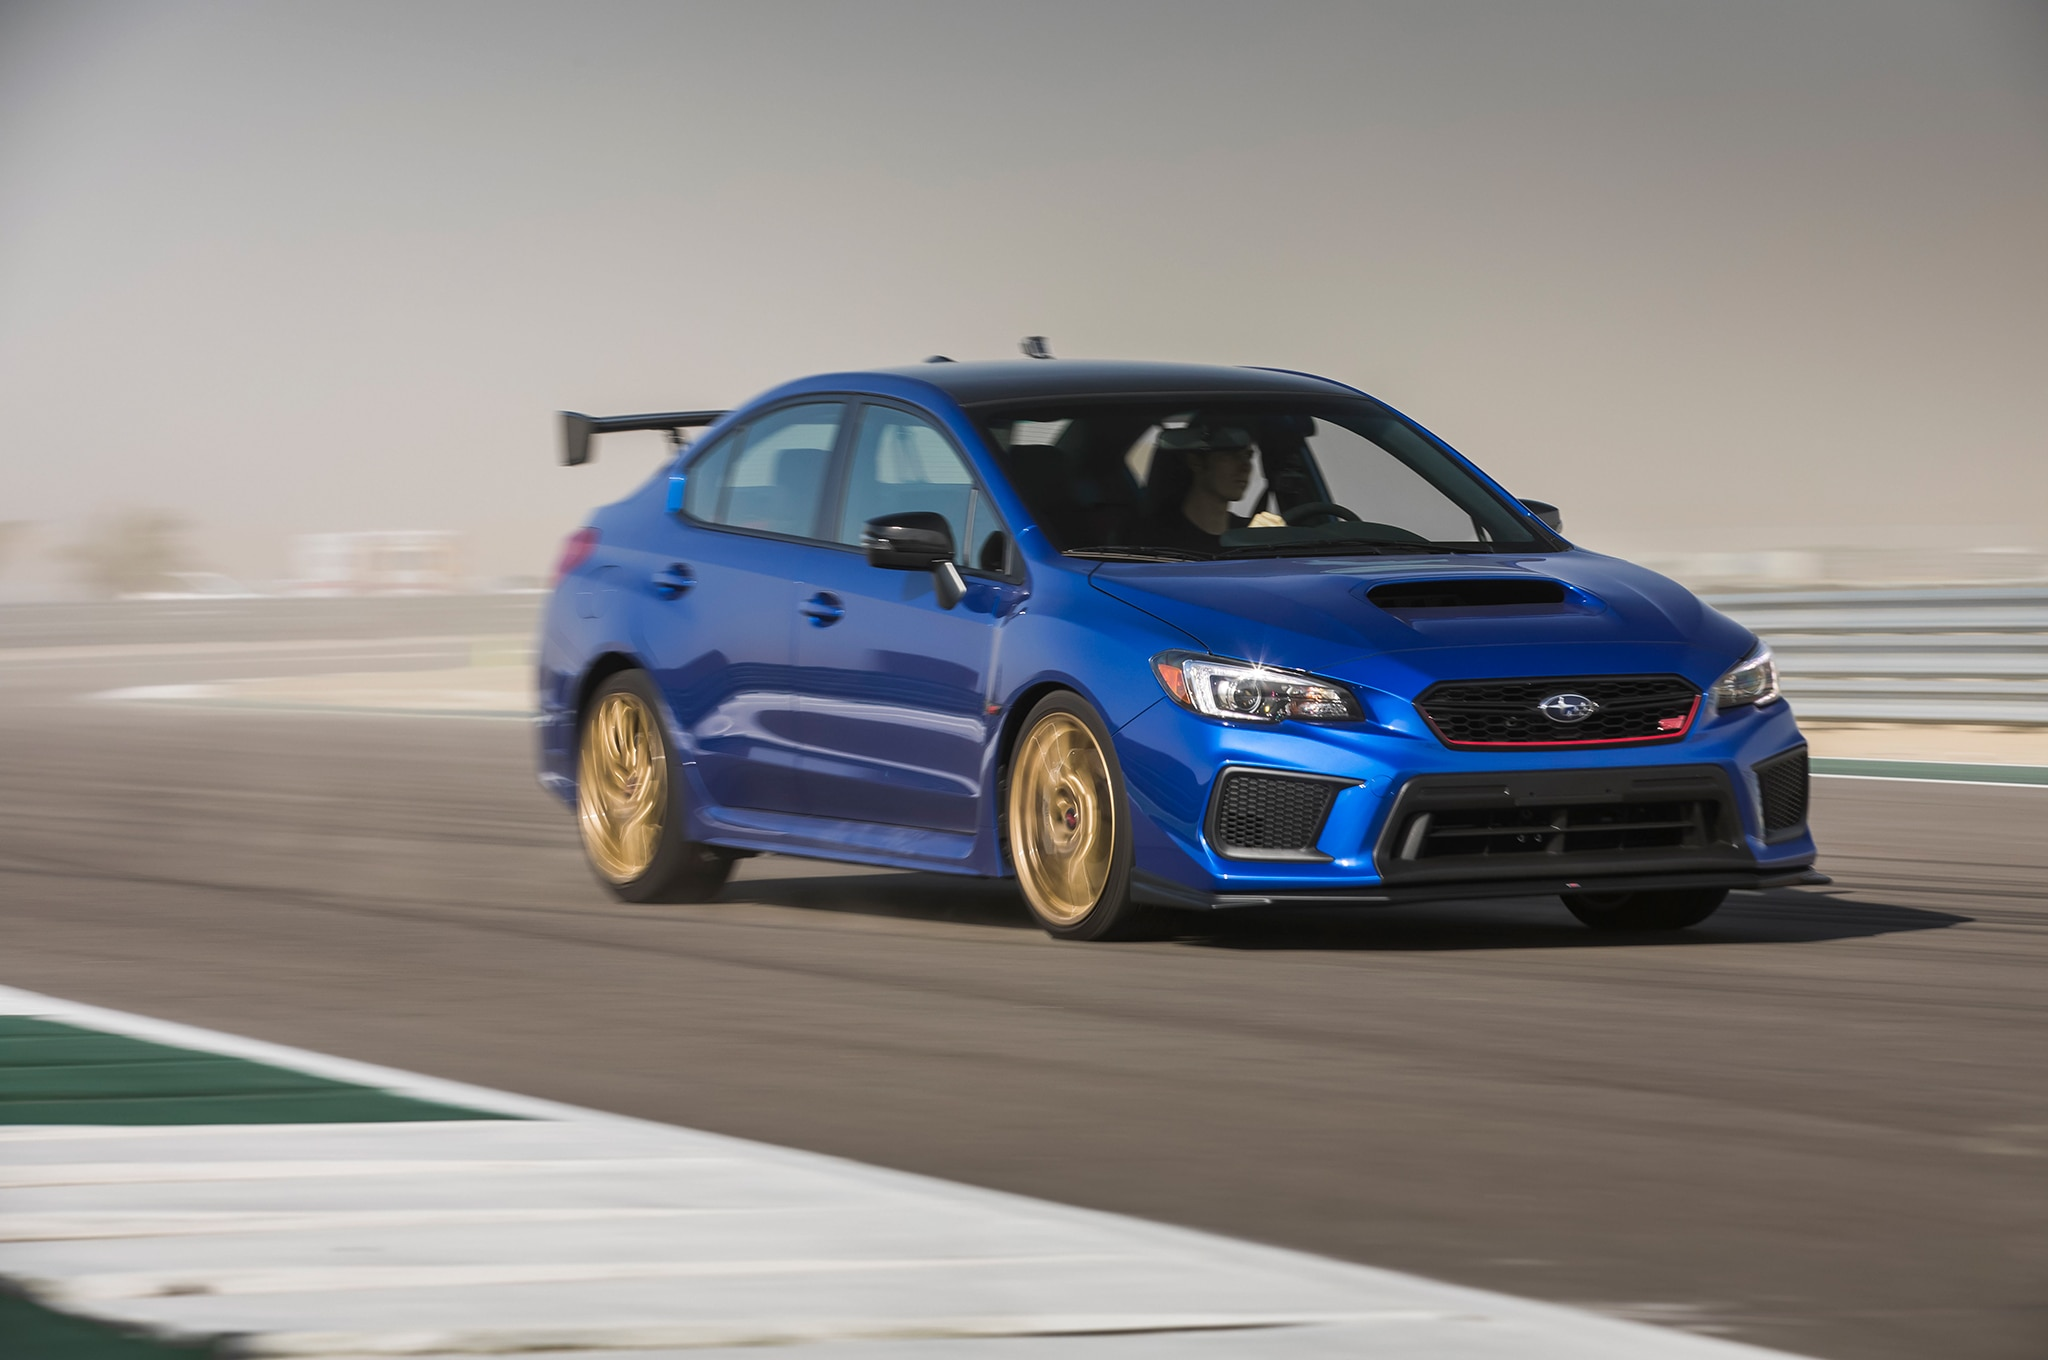 2018 Subaru WRX STI Type RA Front Three Quarter In Motion 38